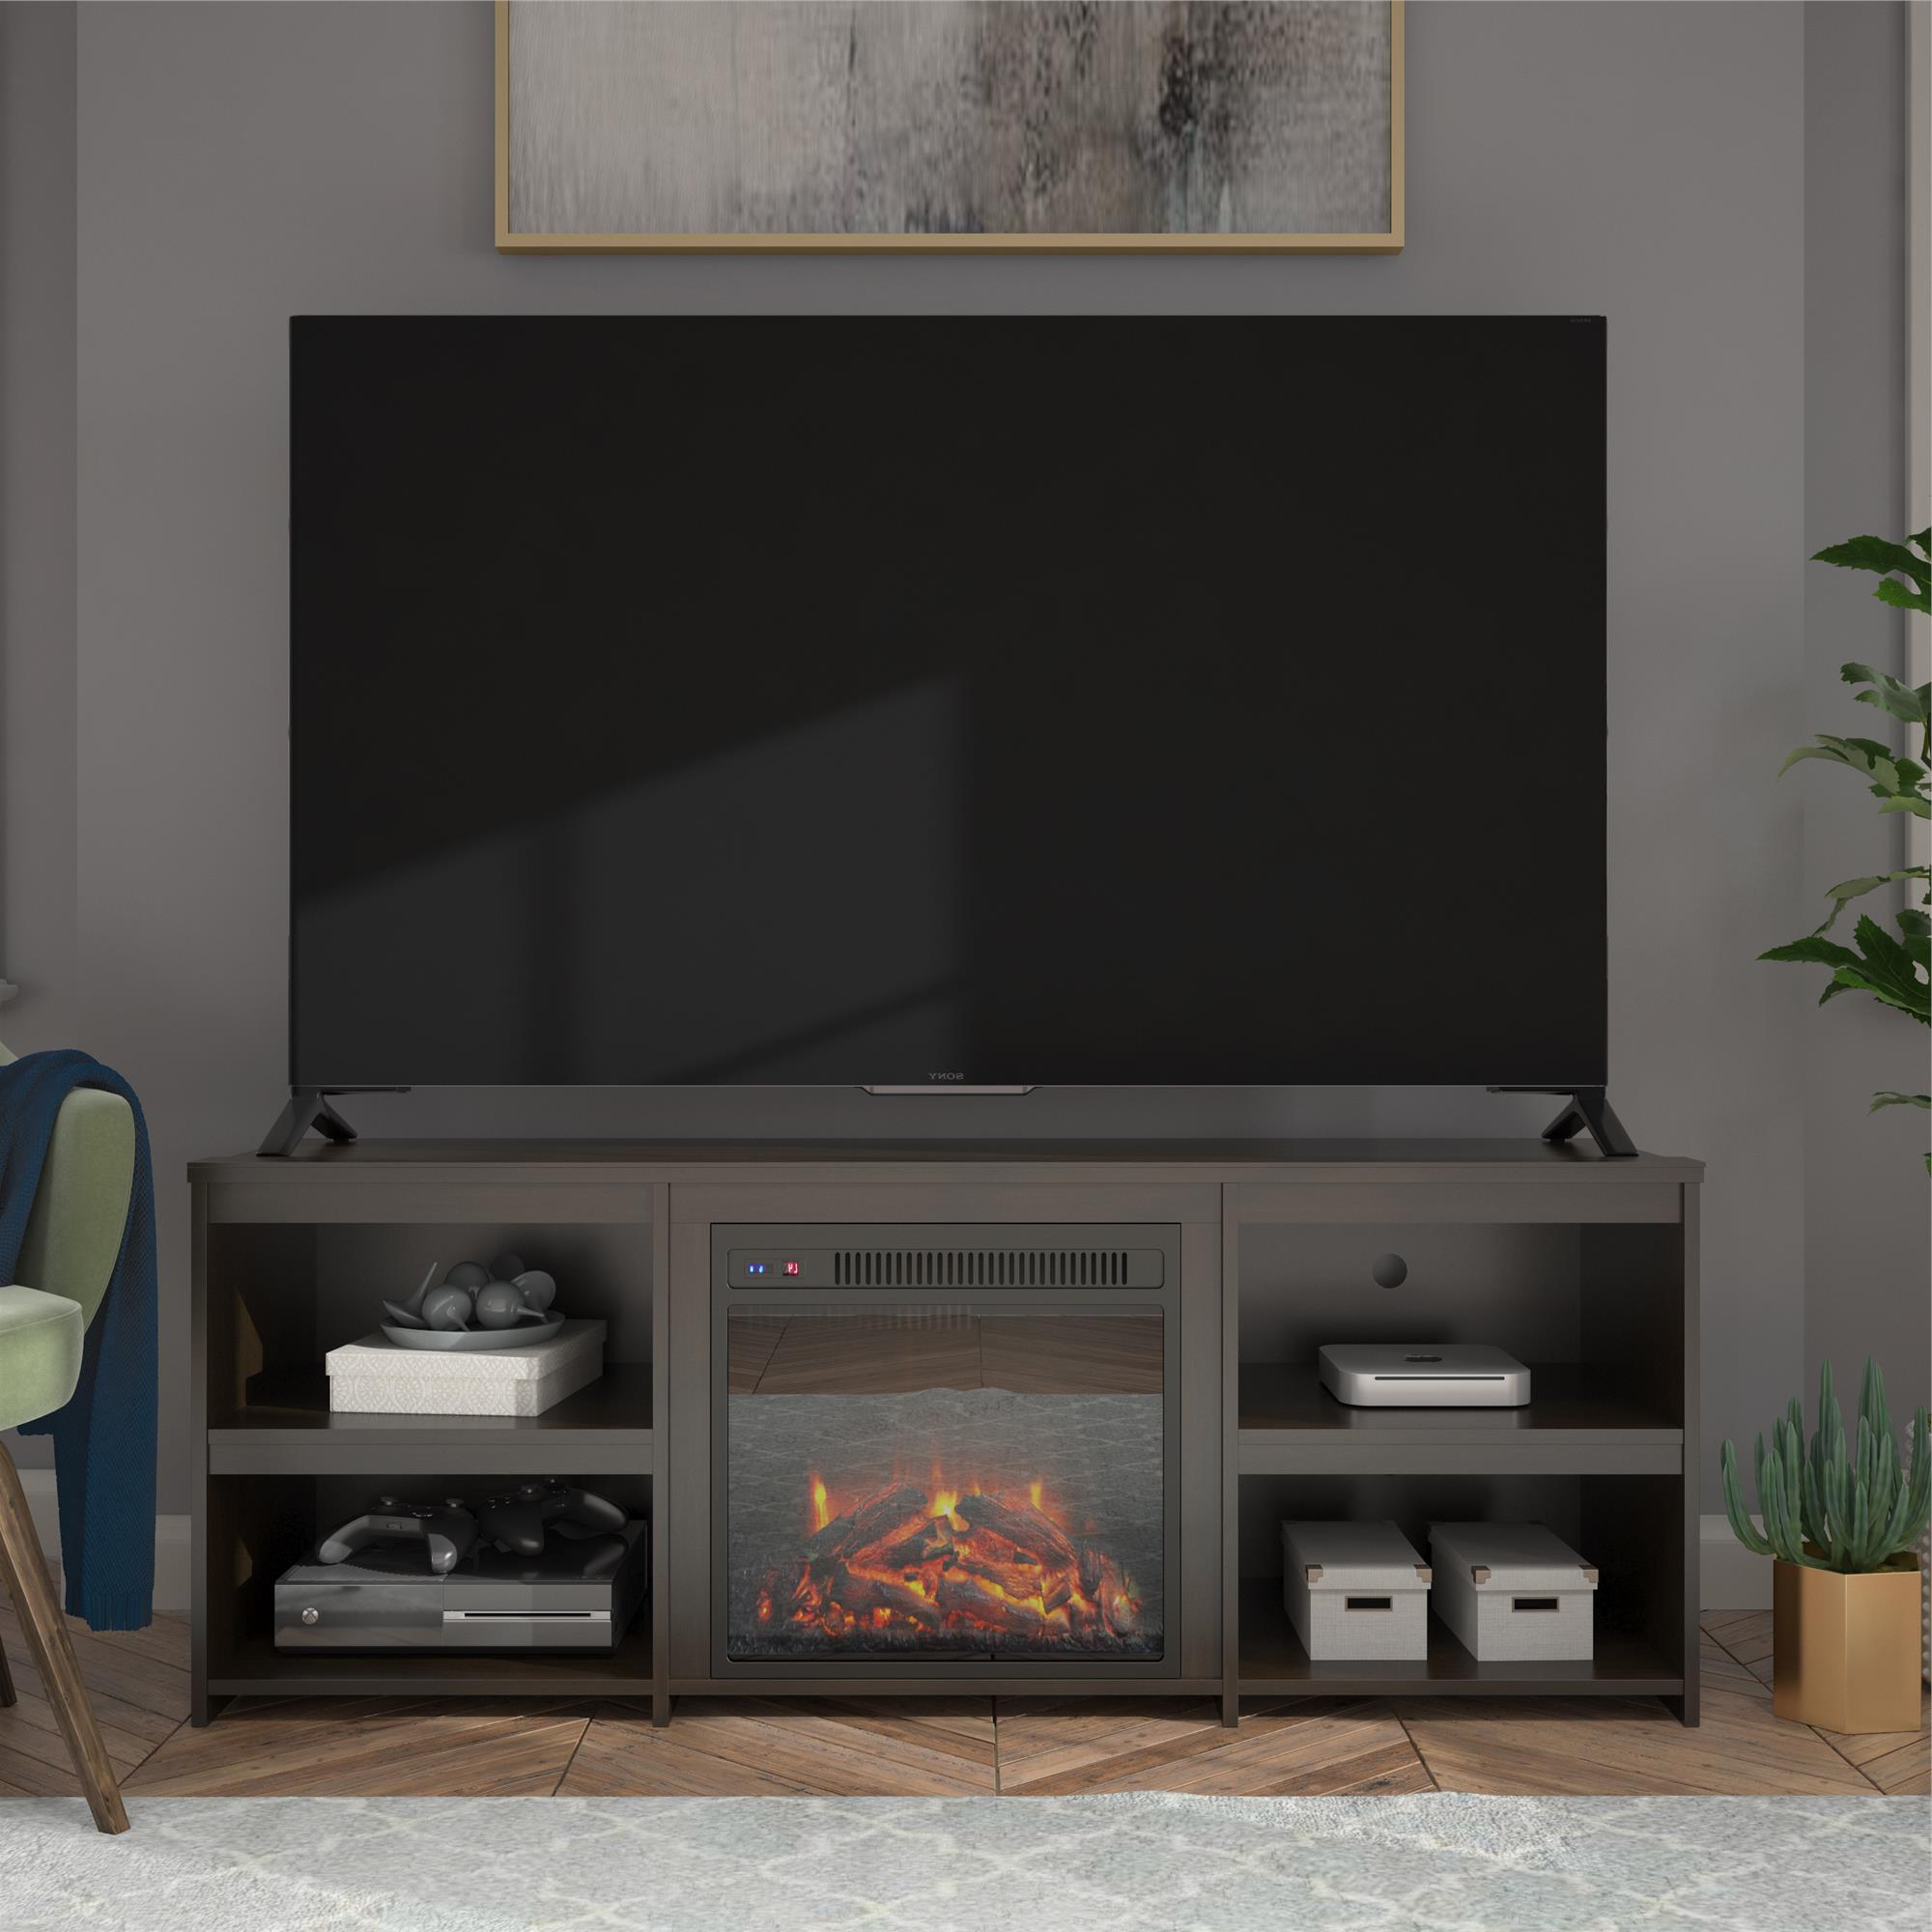 """2017 Ameriwood Home Bannack Fireplace Tv Stand For Tvs Up To 65 Intended For Stamford Tv Stands For Tvs Up To 65"""" (View 9 of 25)"""